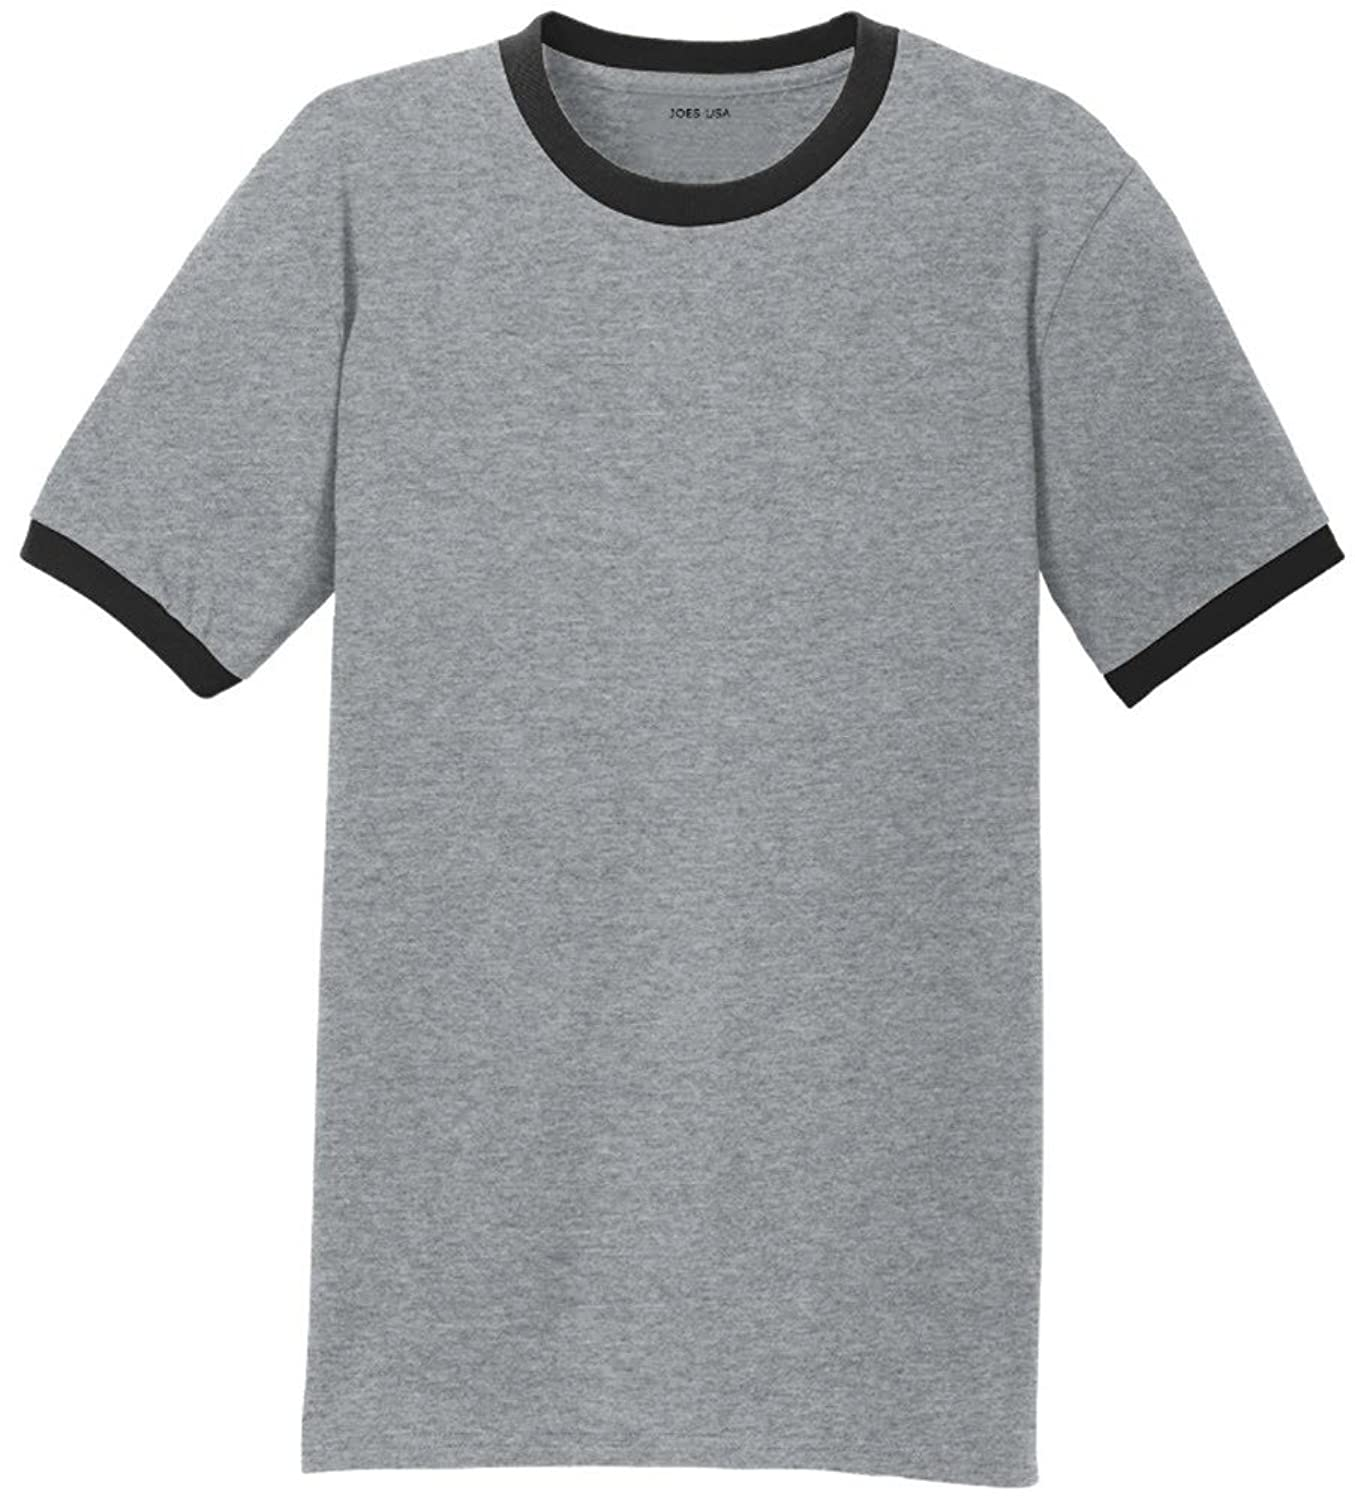 Men's Soft 5.4-Oz 100% Cotton Ringer T-Shirts in Adult Sizes: S ...